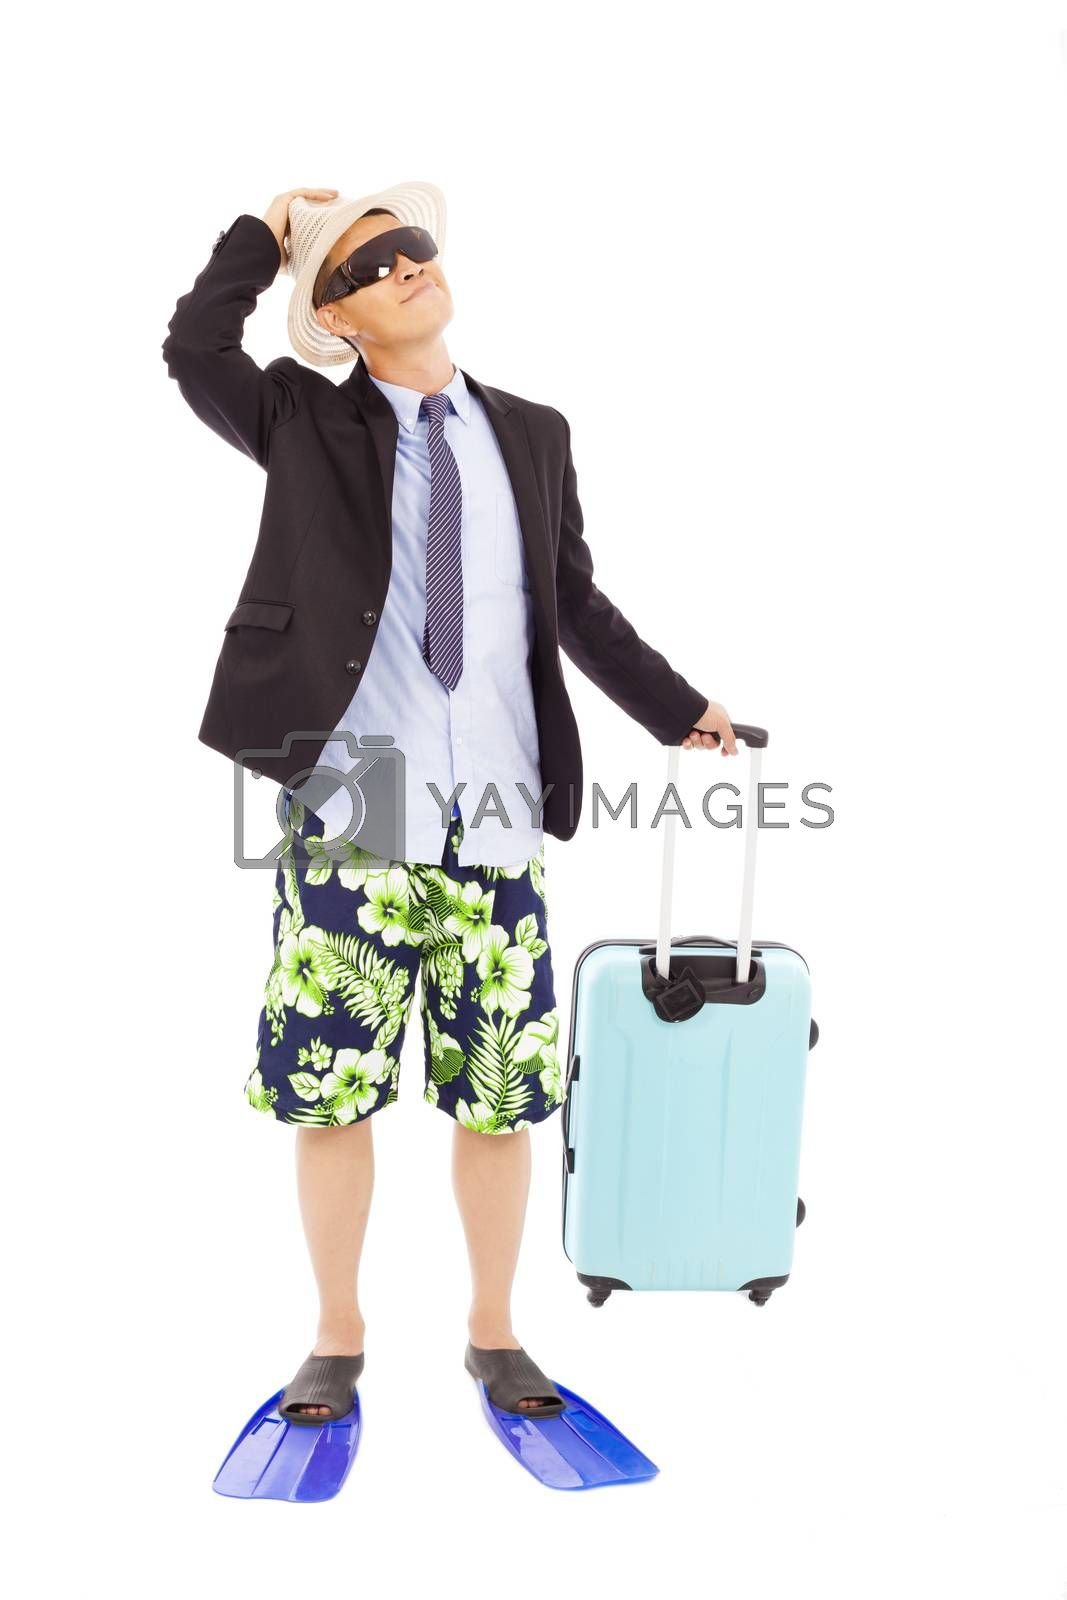 Royalty free image of businessman holding a baggage and look up by tomwang